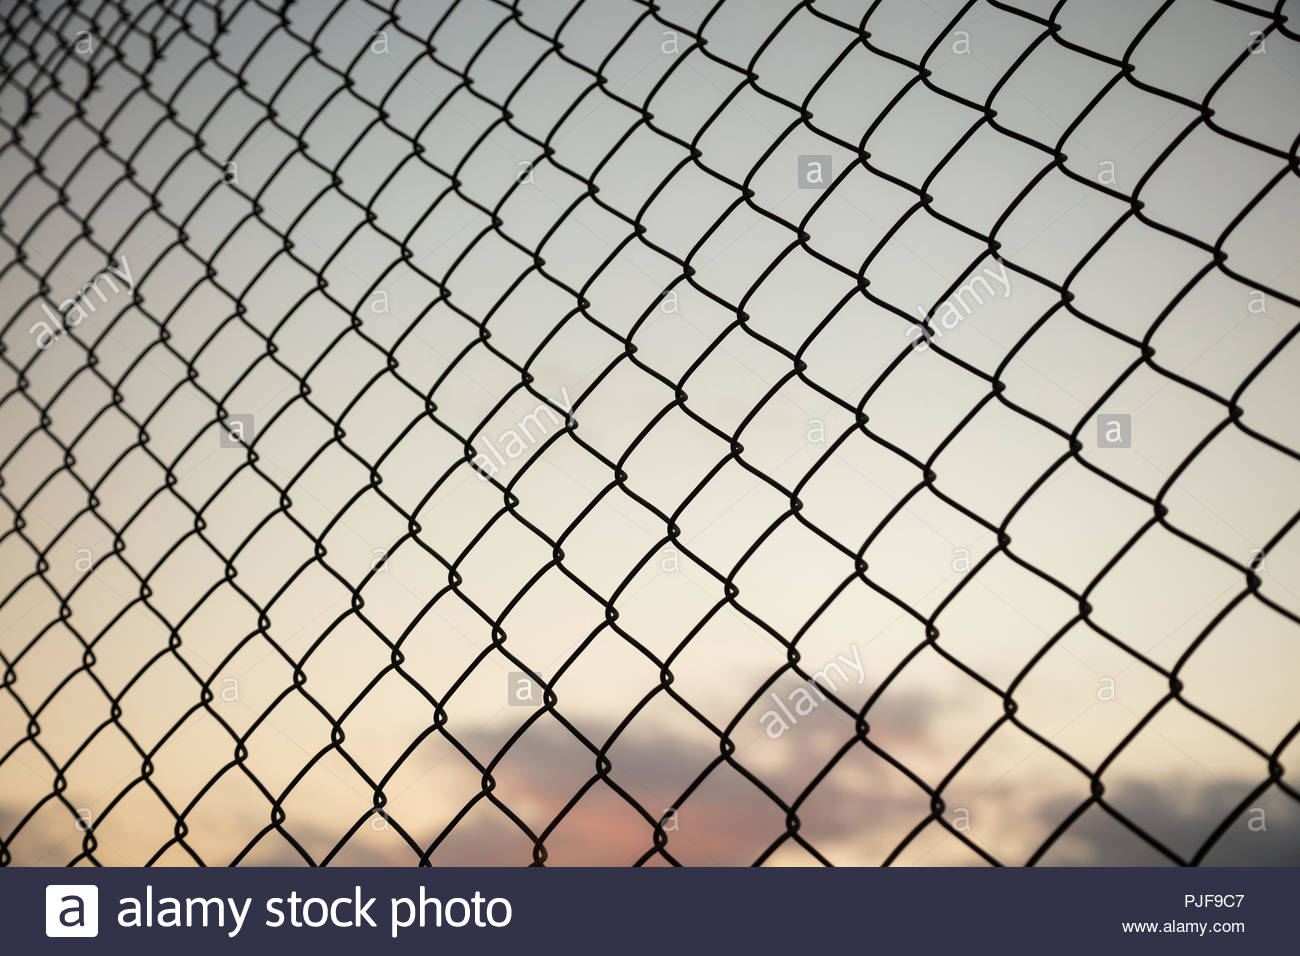 Sky through wire mesh fence Blur background close up view of 1300x956